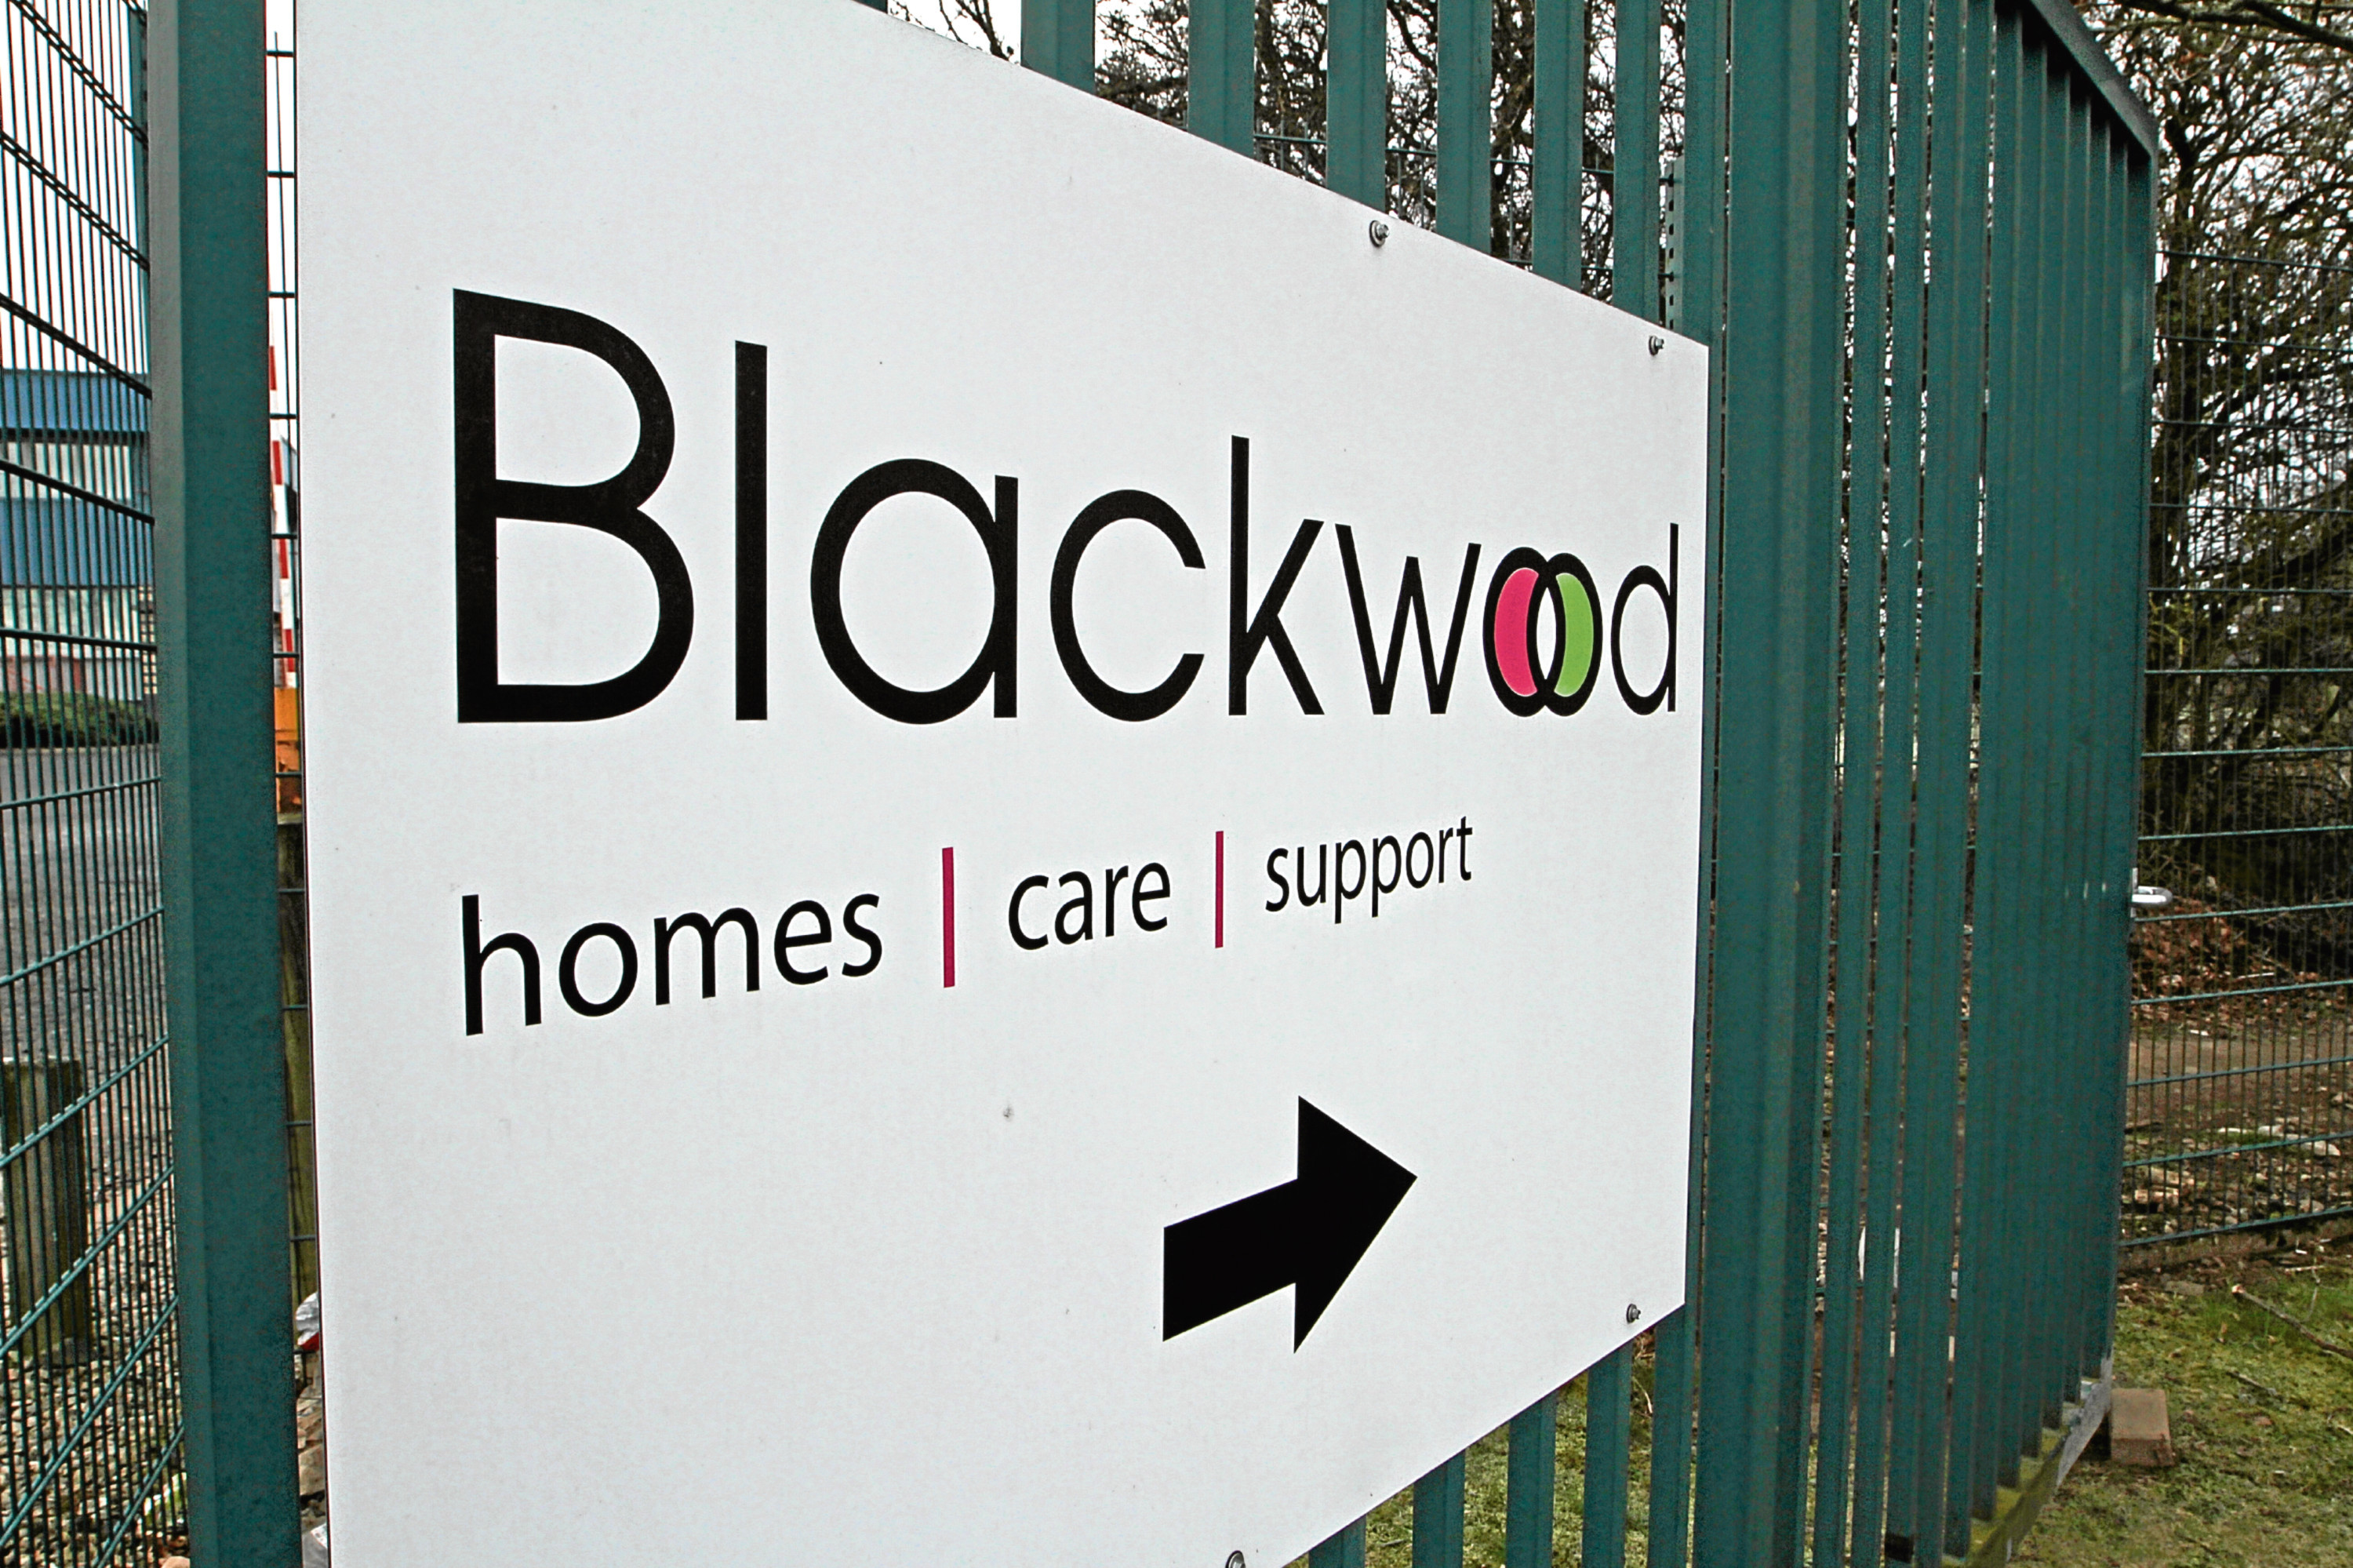 Blackwood Care Services on Jack Martin Way, Dundee